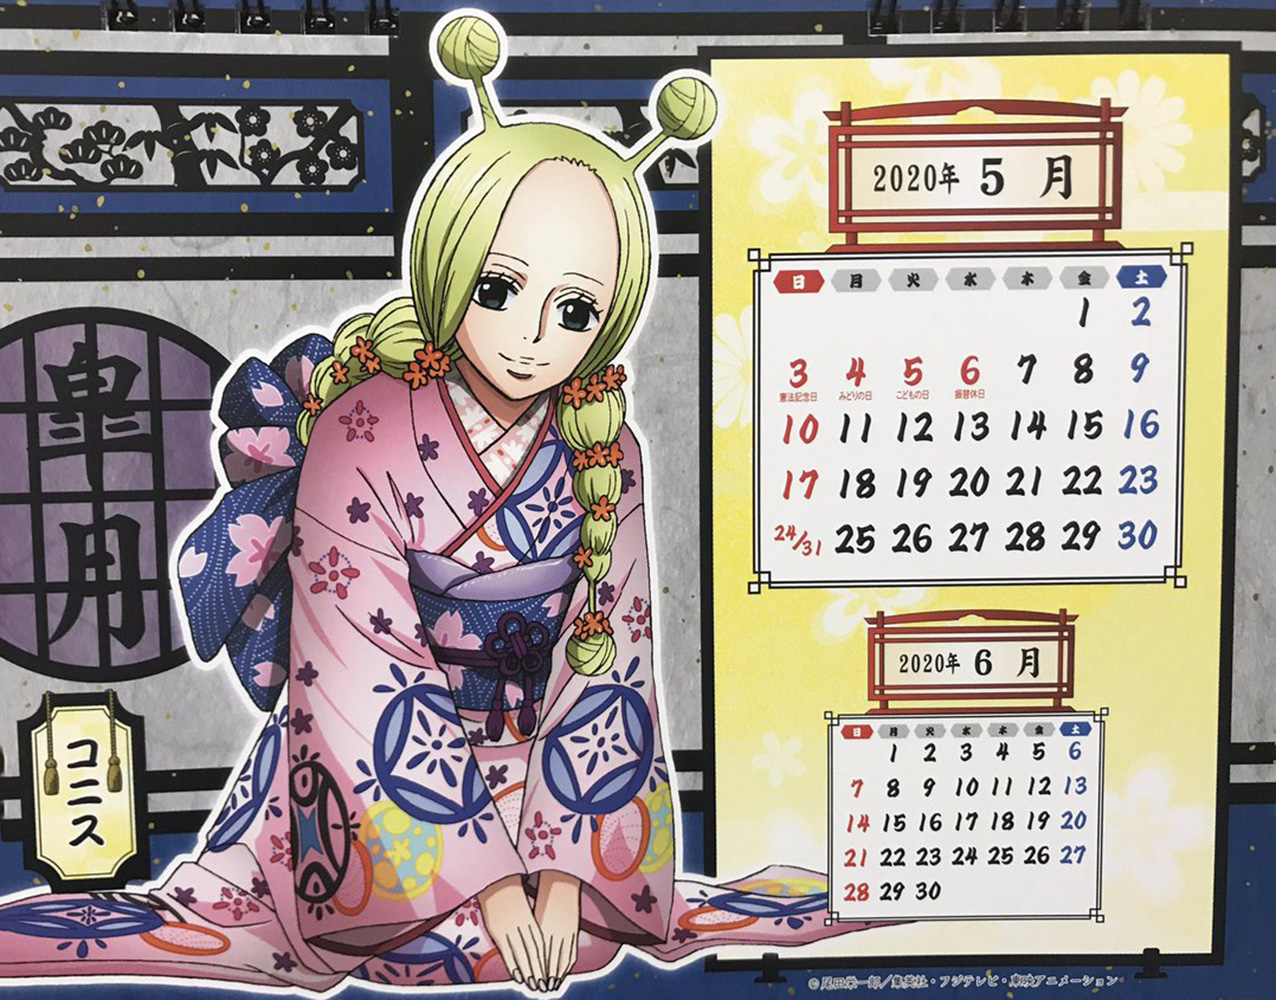 05 Conis (One Piece Tsuya Pirate Age Girls 2020 Calendar)